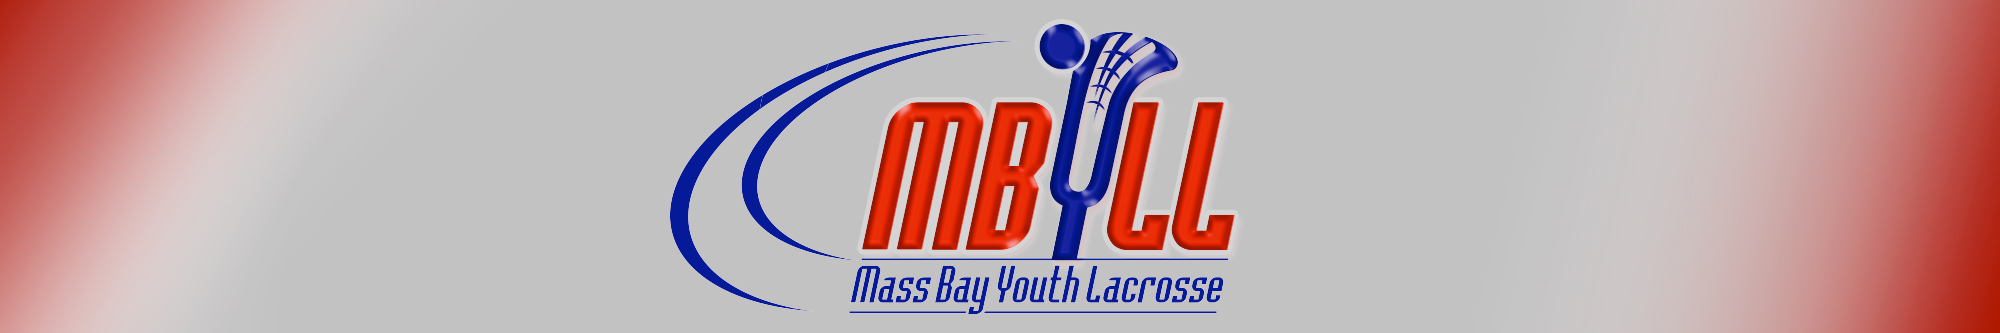 Mass Bay Youth Lacrosse Equipment Store